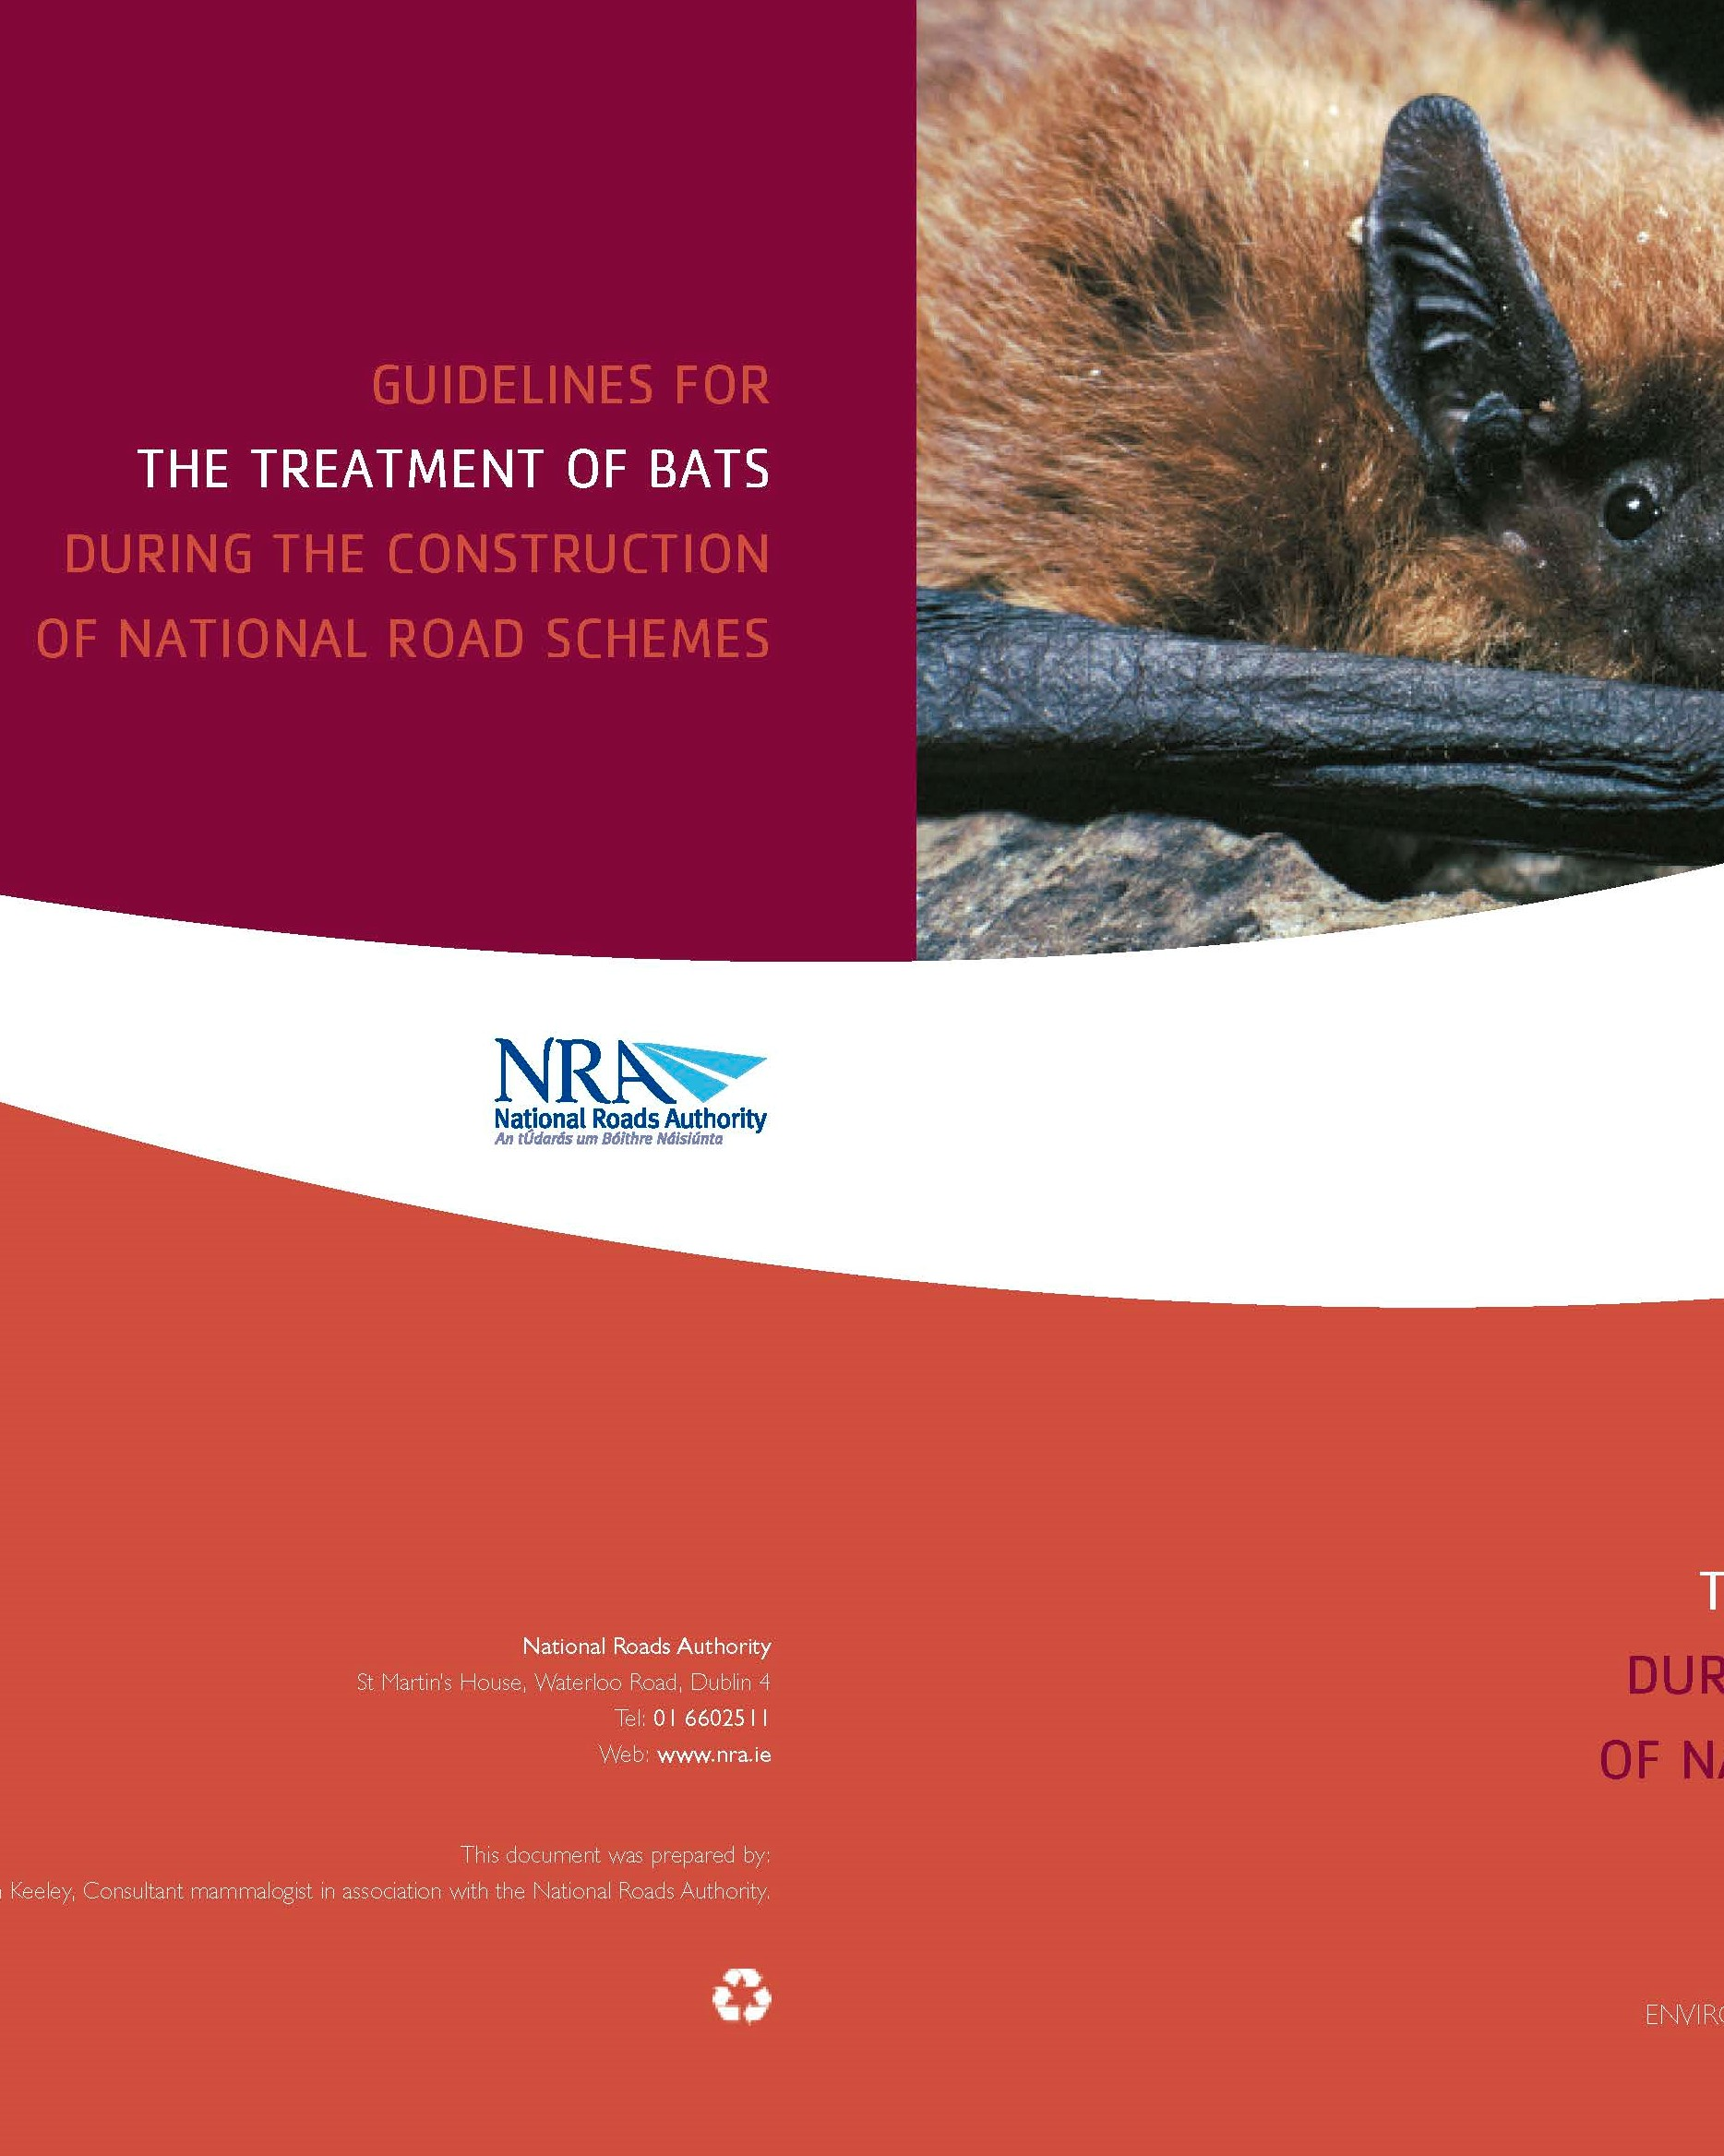 Guidelines for the Treatment of Bats during the Construction of National Road Schemes. National Roads Authority (NRA)